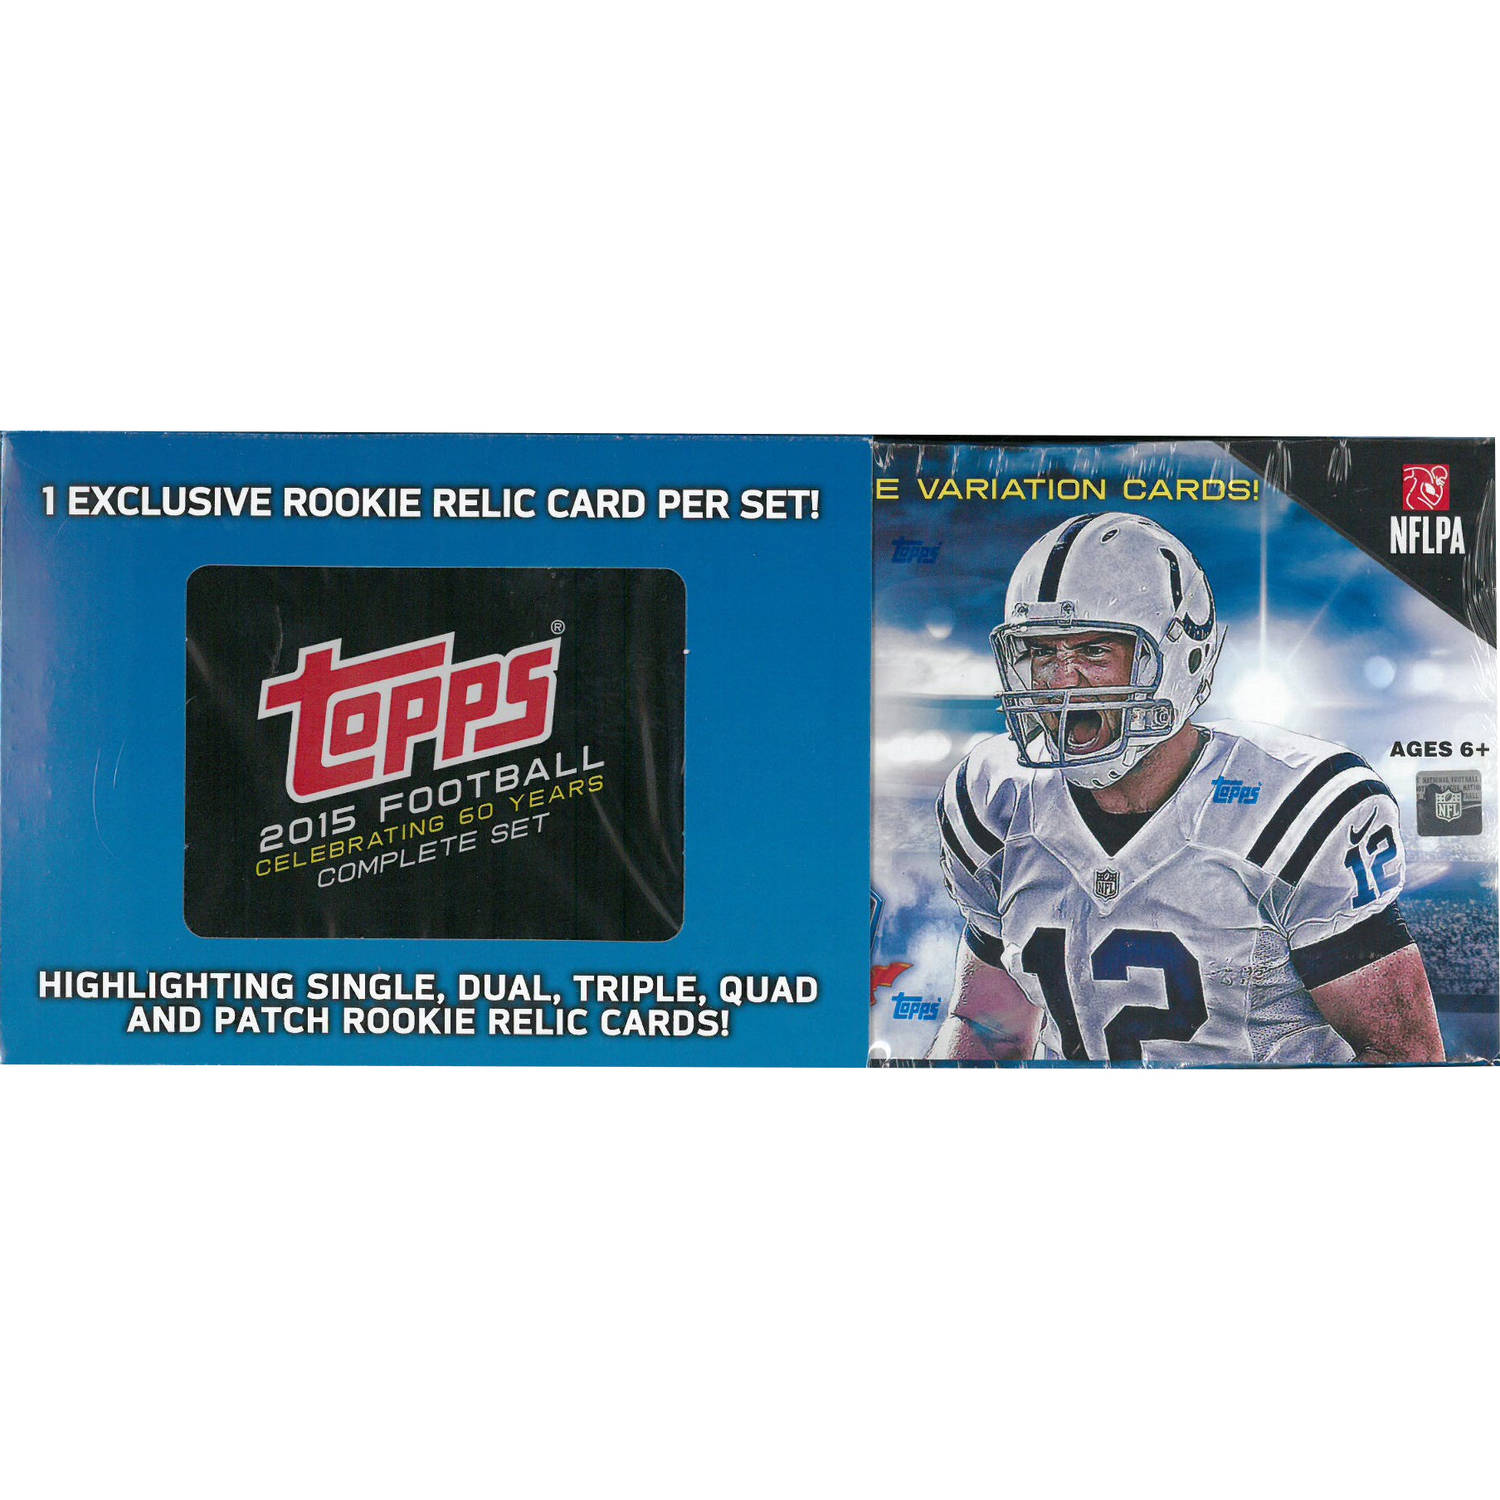 2015 Topps NFL Football Complete Set Trading Cards